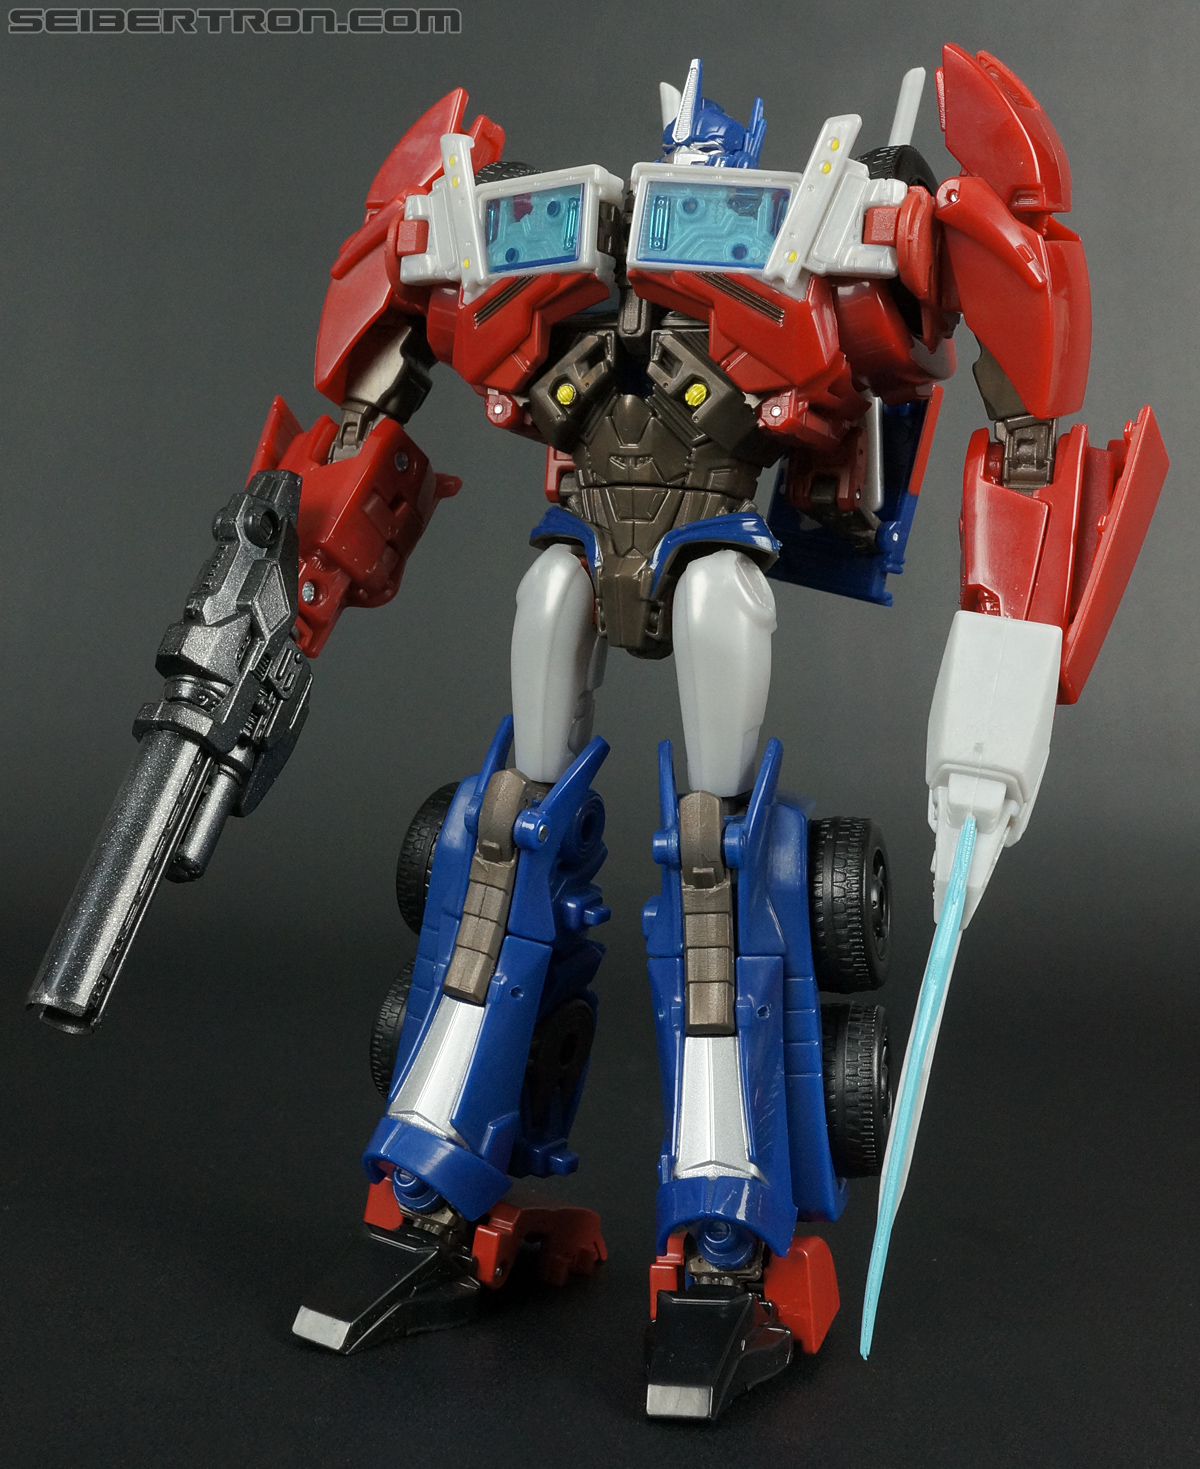 Transformers Prime: First Edition Optimus Prime Toy ...